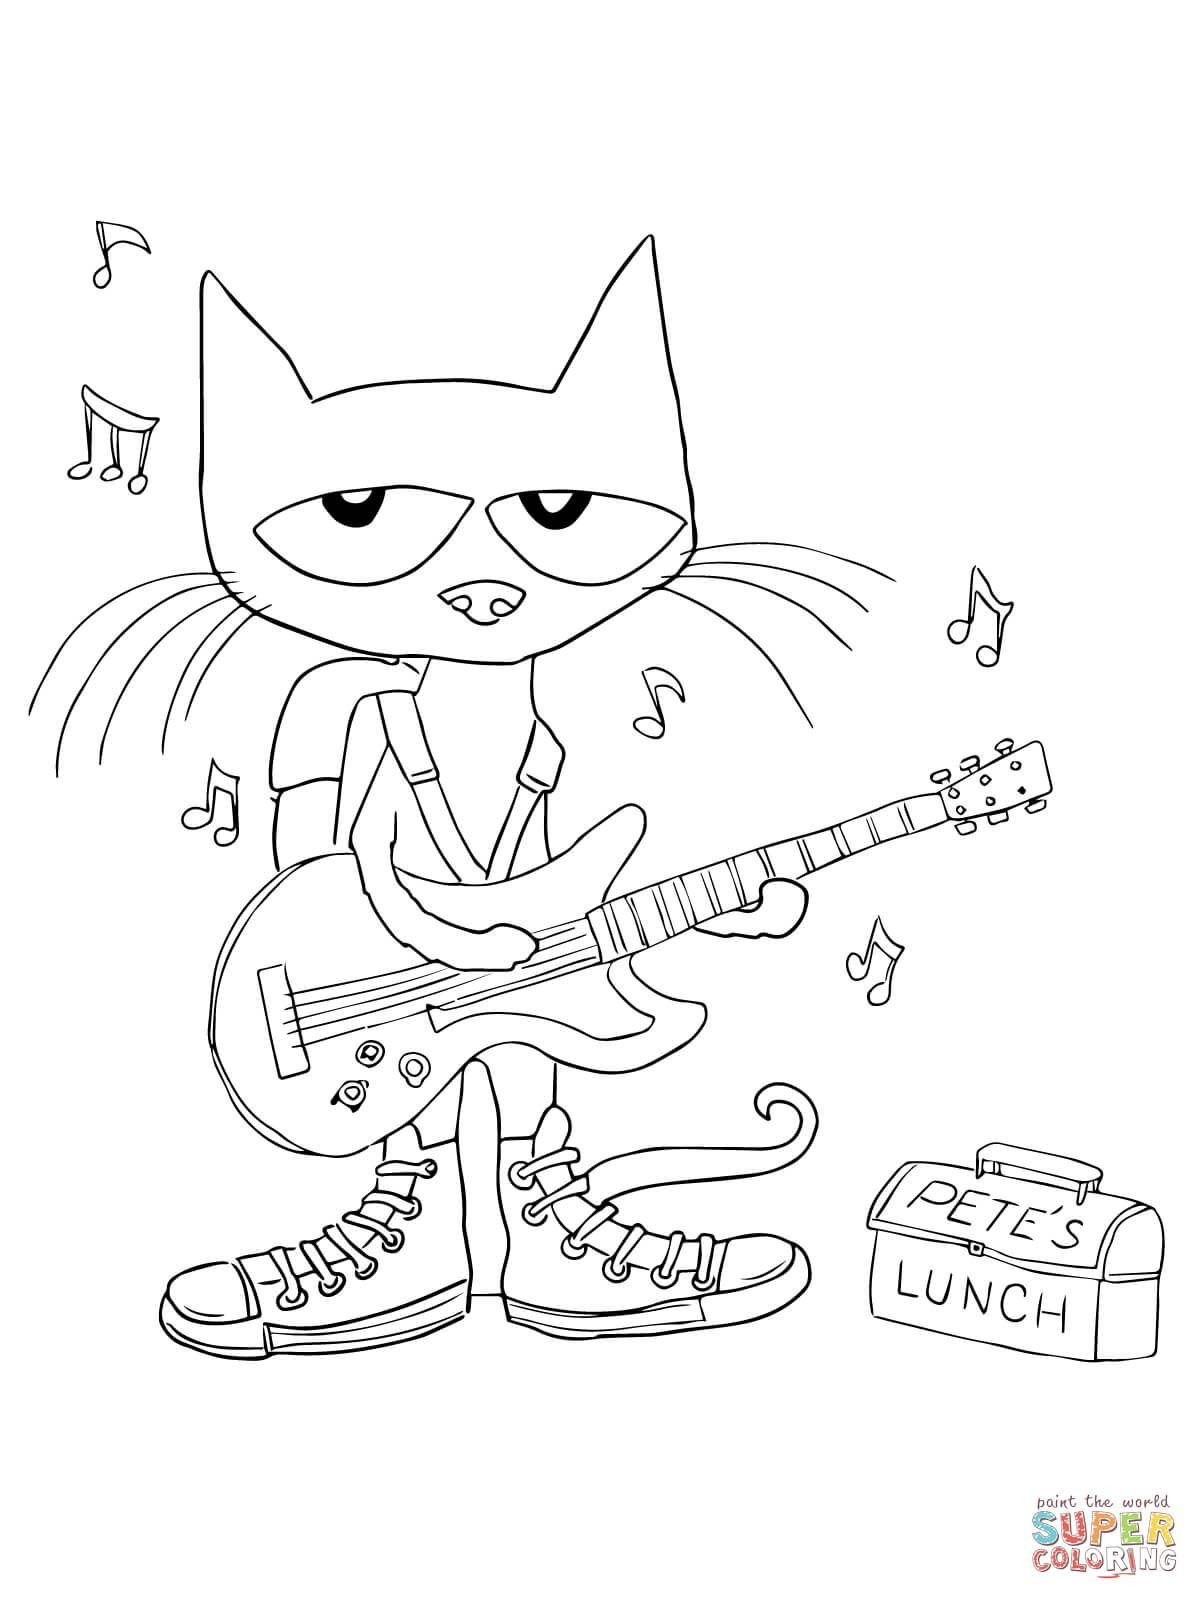 Pete The Cat I Love My White Shoes Coloring Page Youngandtae Com In 2020 Pete The Cat Shoes Pete The Cat Music Coloring